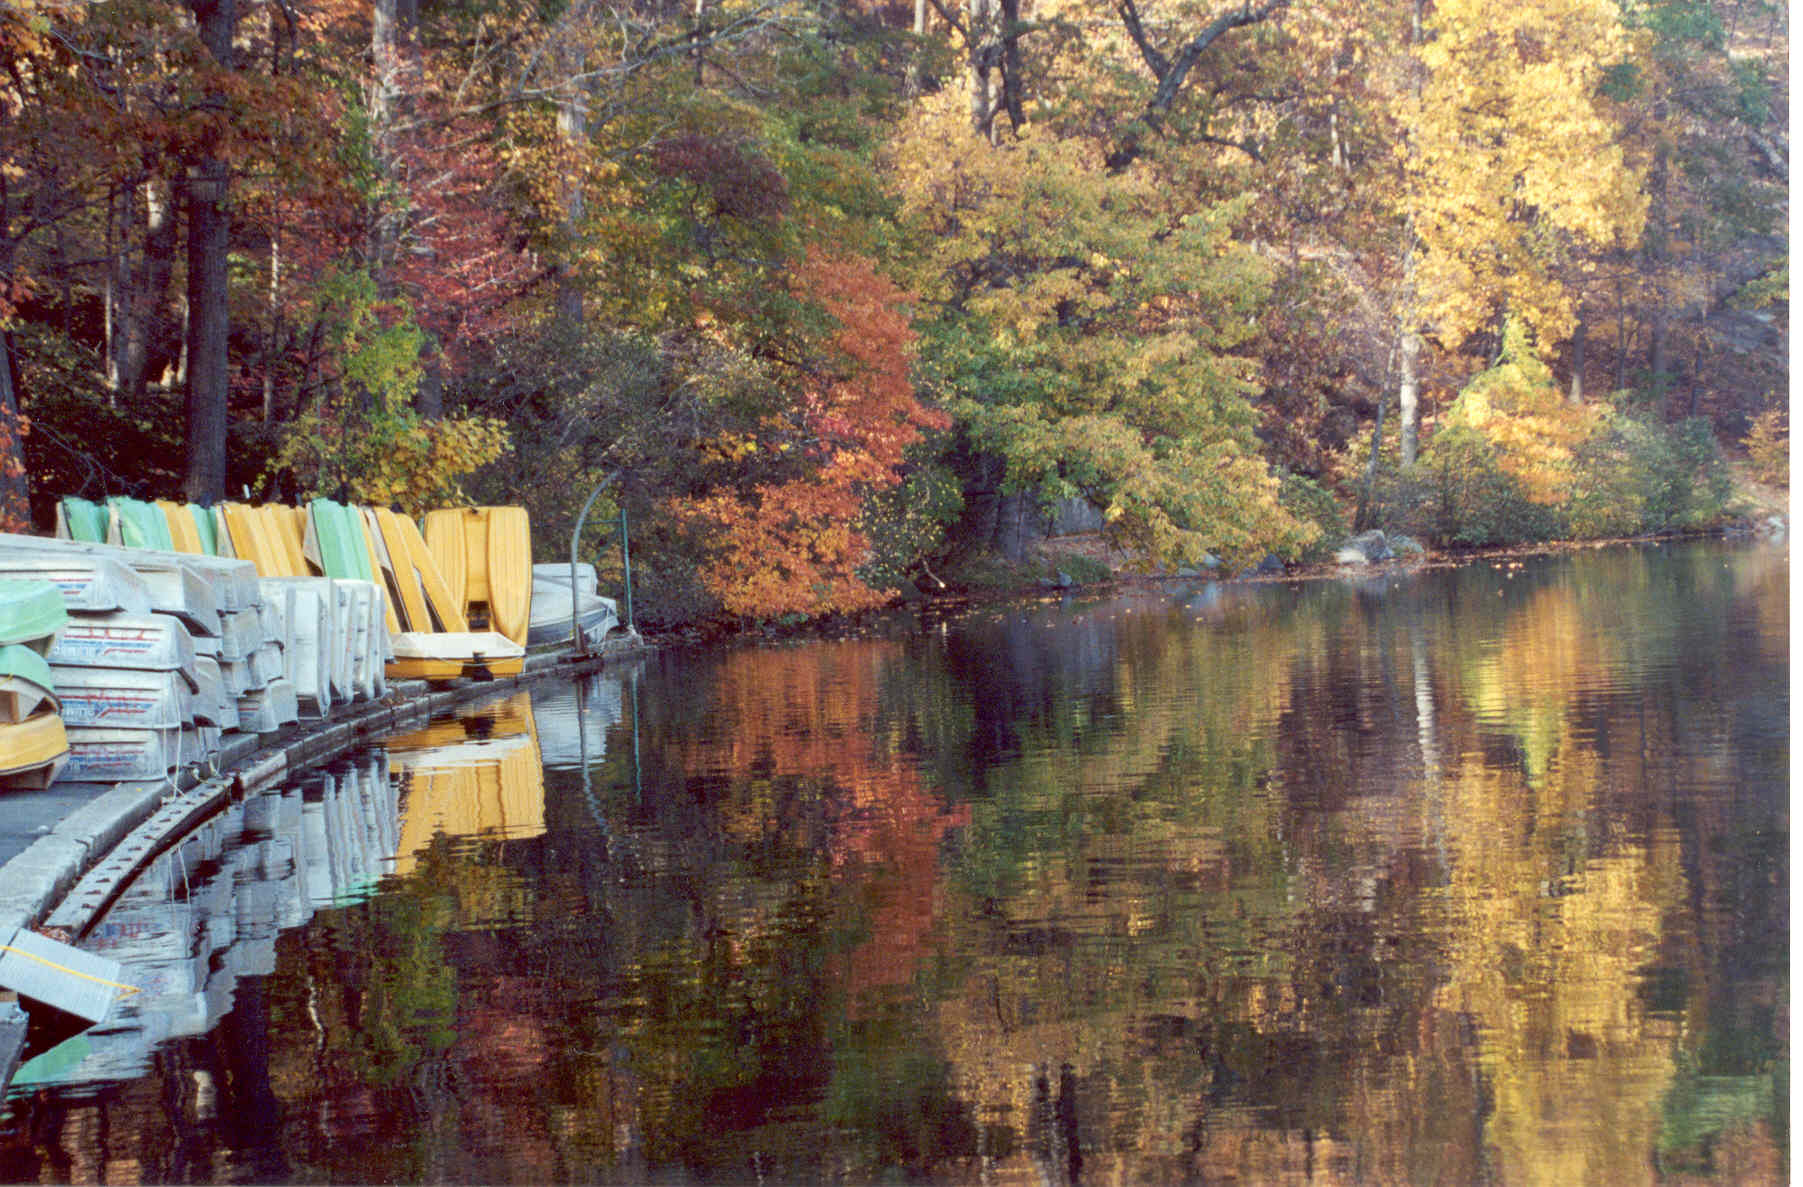 Hessian lake 2003 DF.jpg